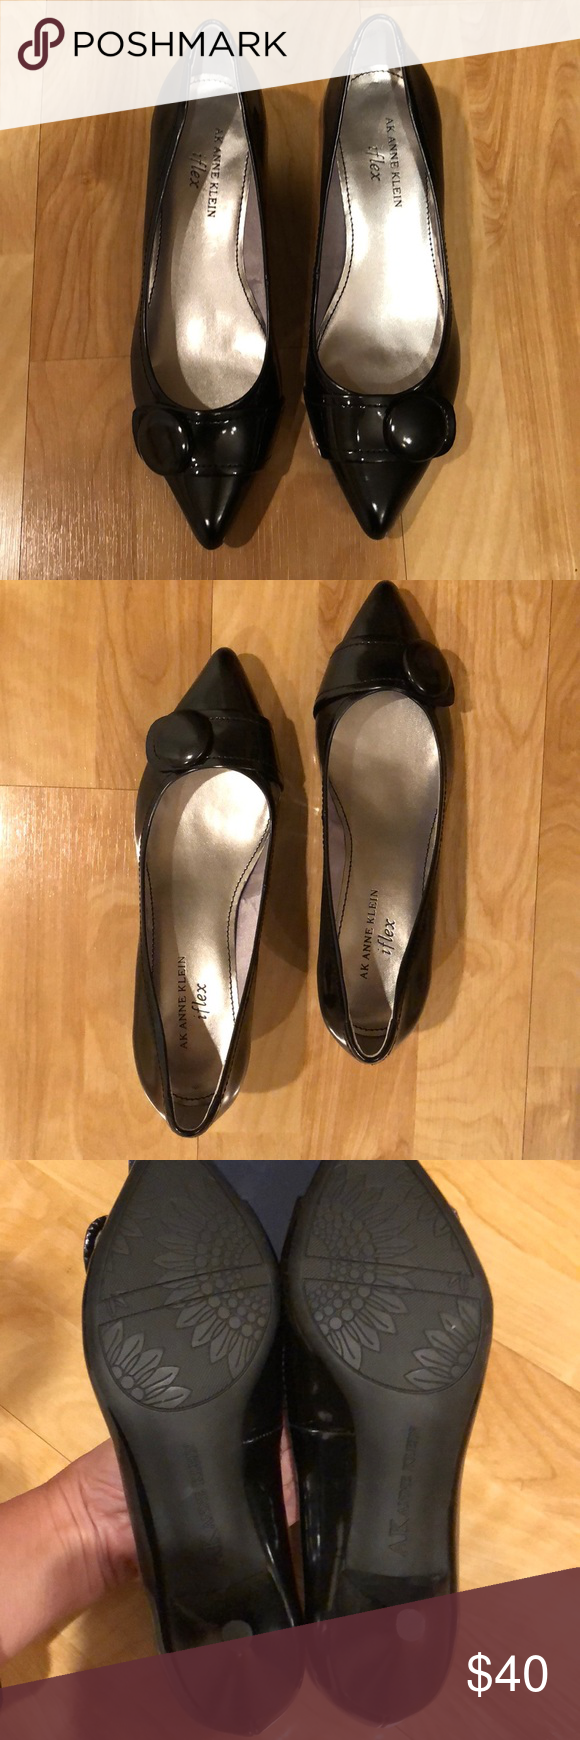 New Anne Klein Kitten Heels Anne Klein Shoes Kitten Heel Pumps Kitten Heels